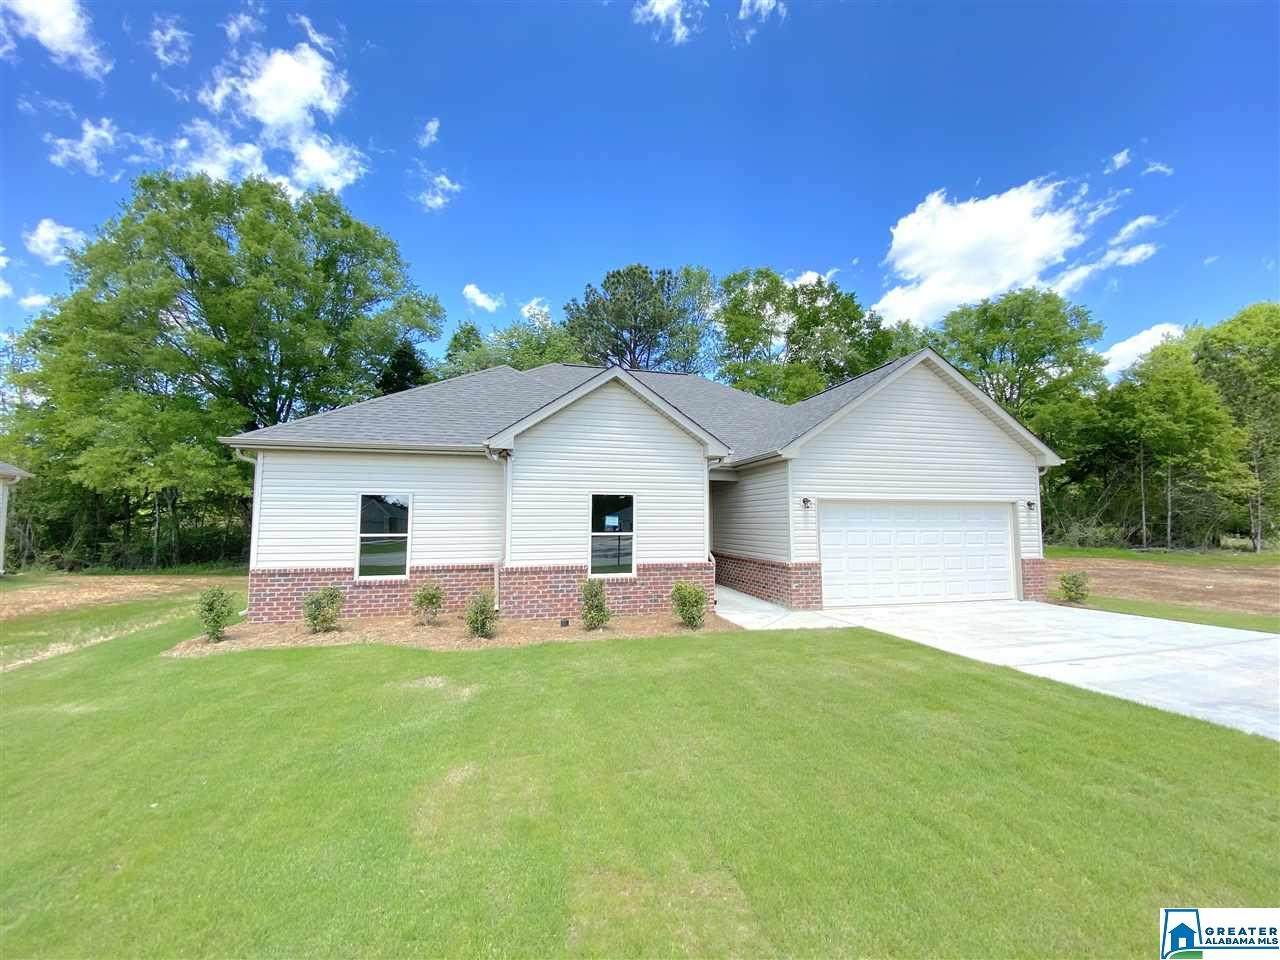 621 White Oak Cir - Photo 1